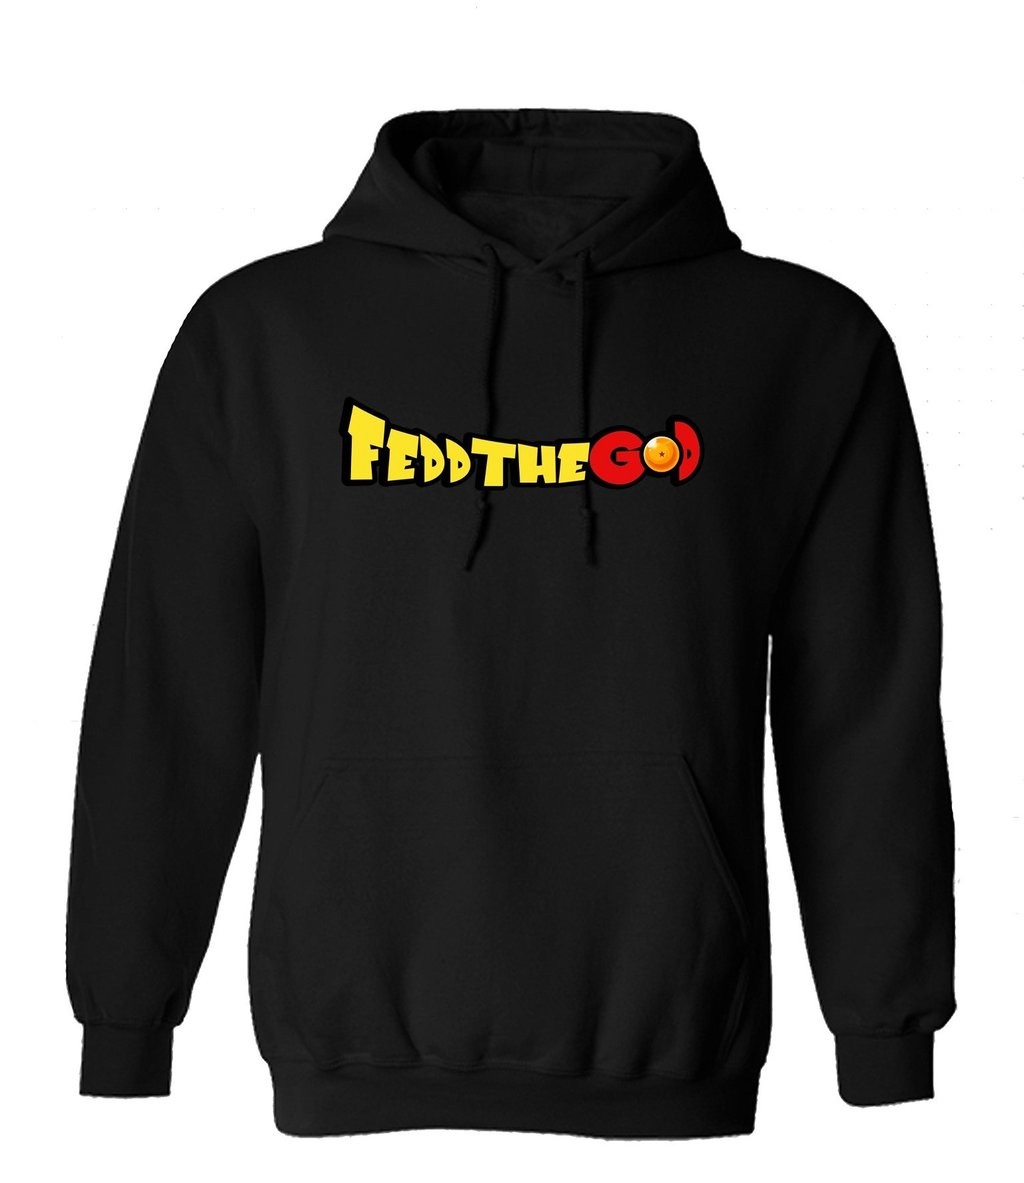 Fedd the God Sweatshirt Merch